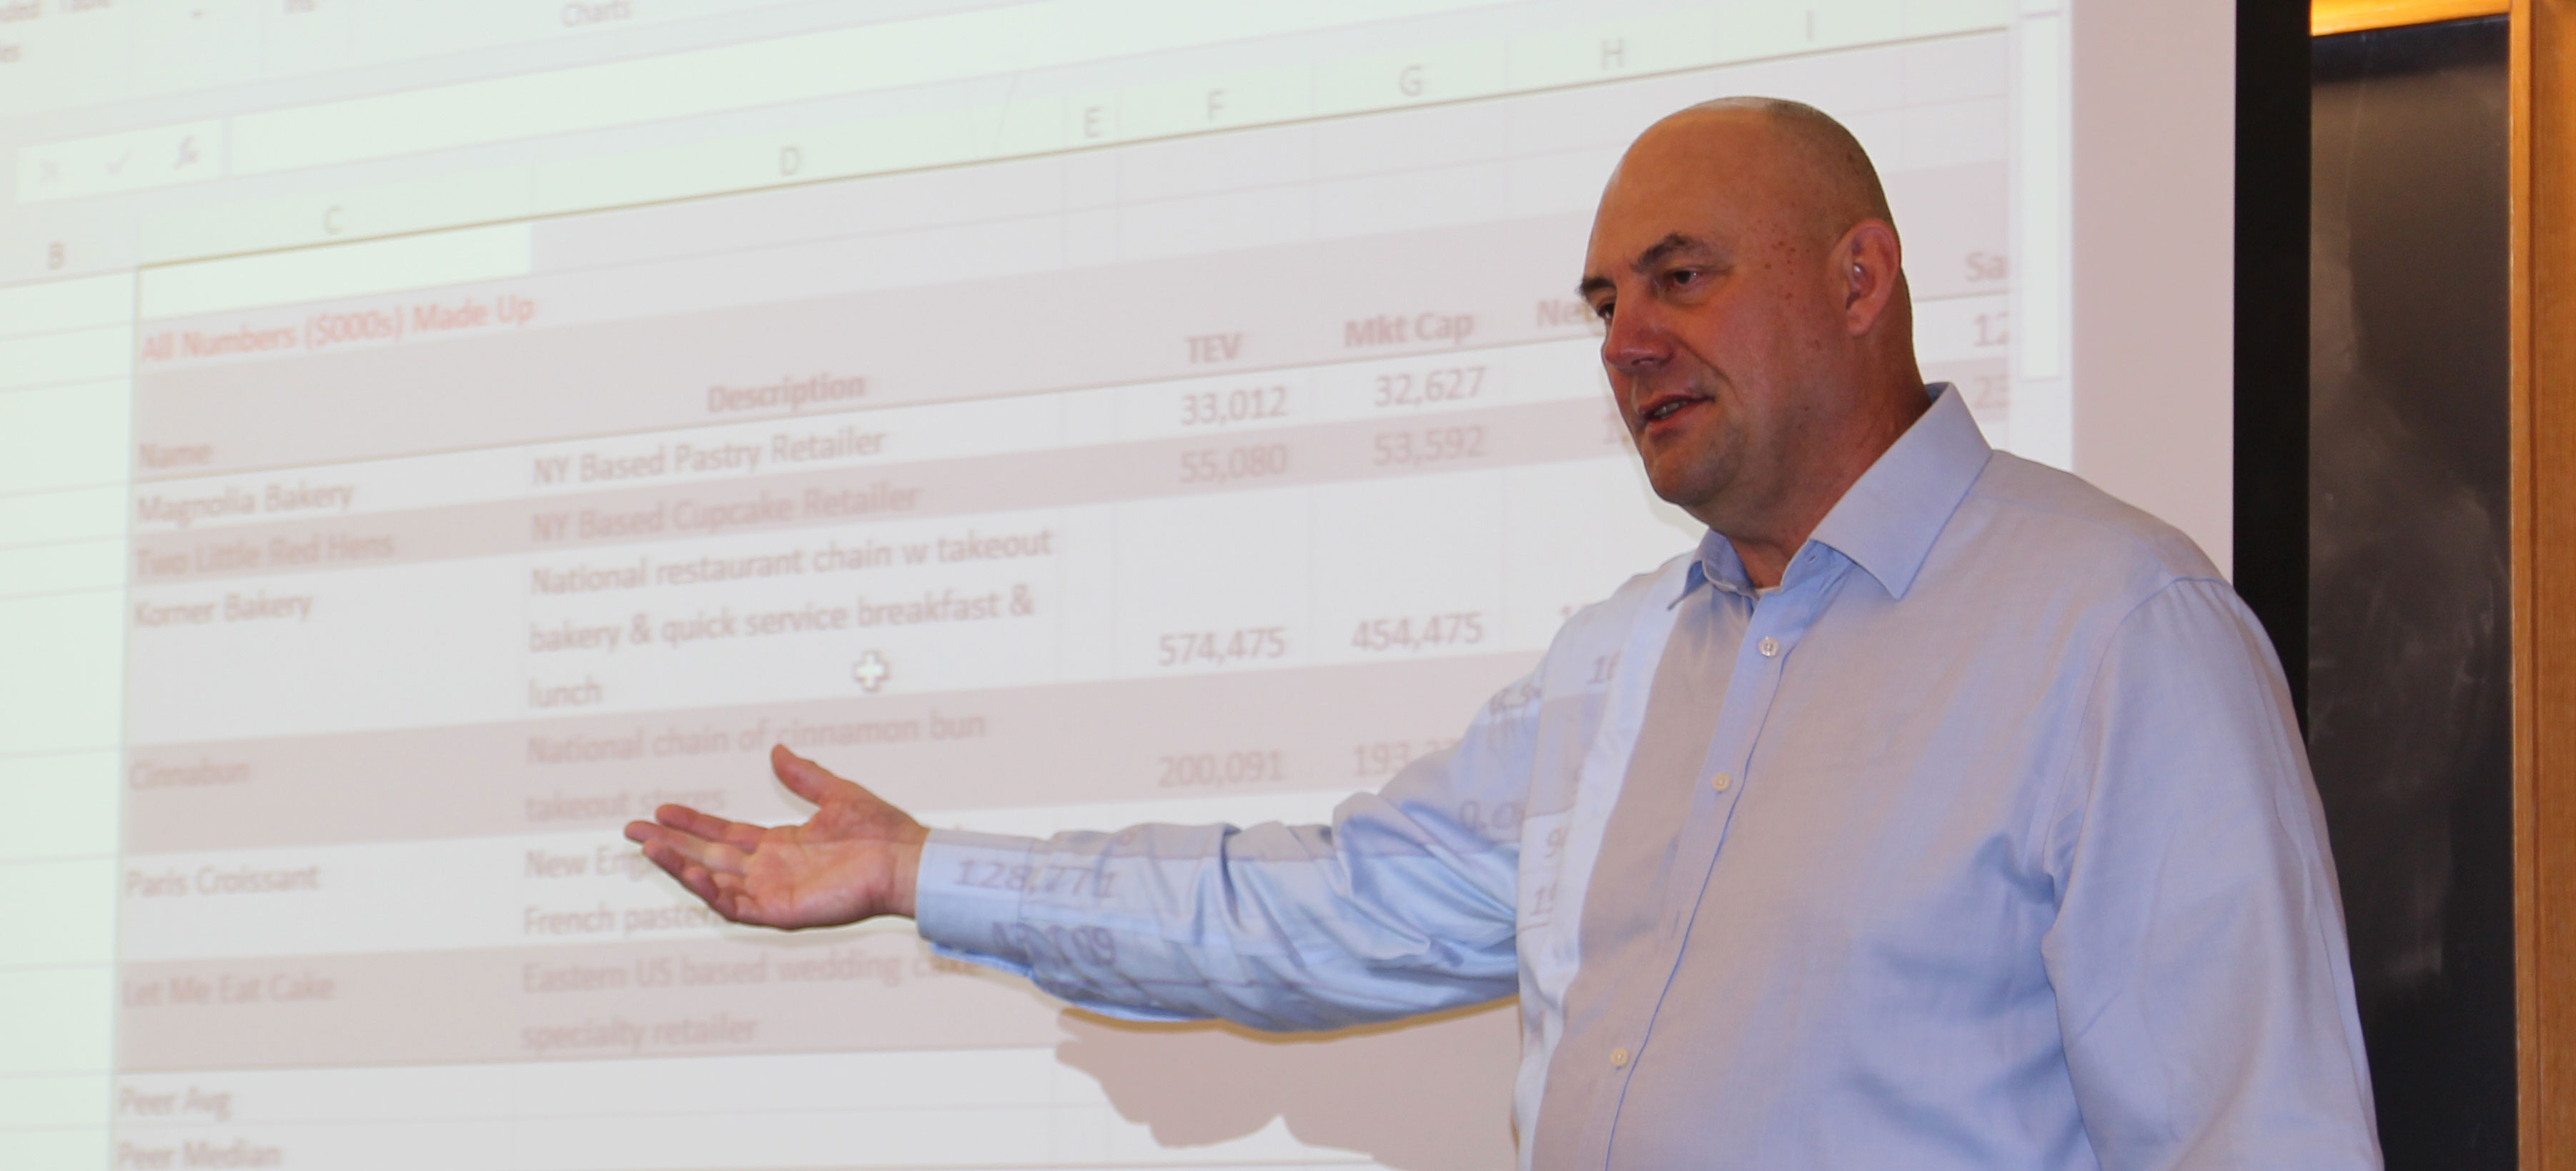 Steve Moyer explains a financial spreadsheet on day three of the finance boot camp he taught in September.